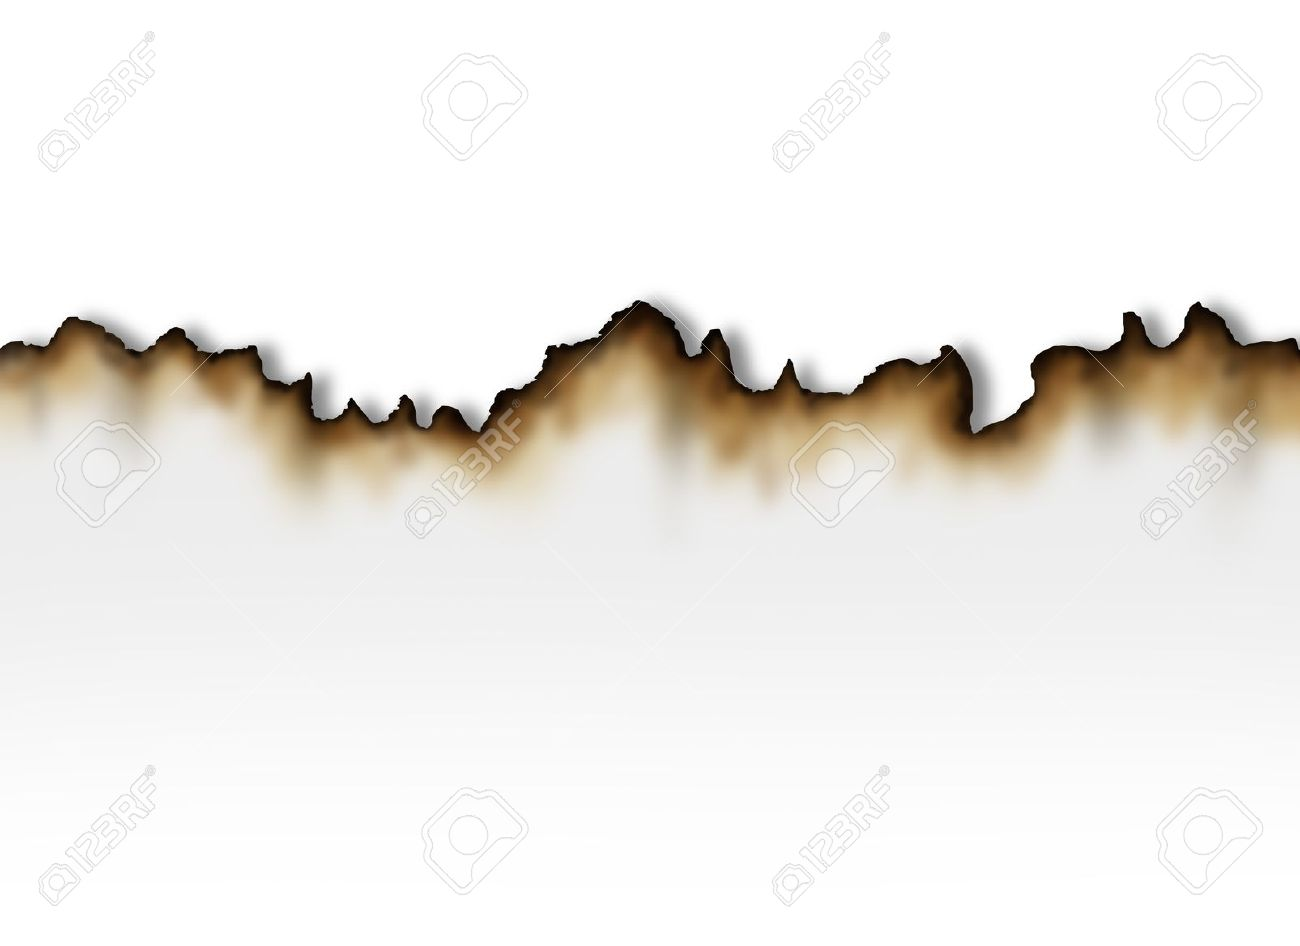 Burnt paper with a white blank background as a symbol of fire damage and insurance caused by arson or burning accident Stock Photo - 14571351